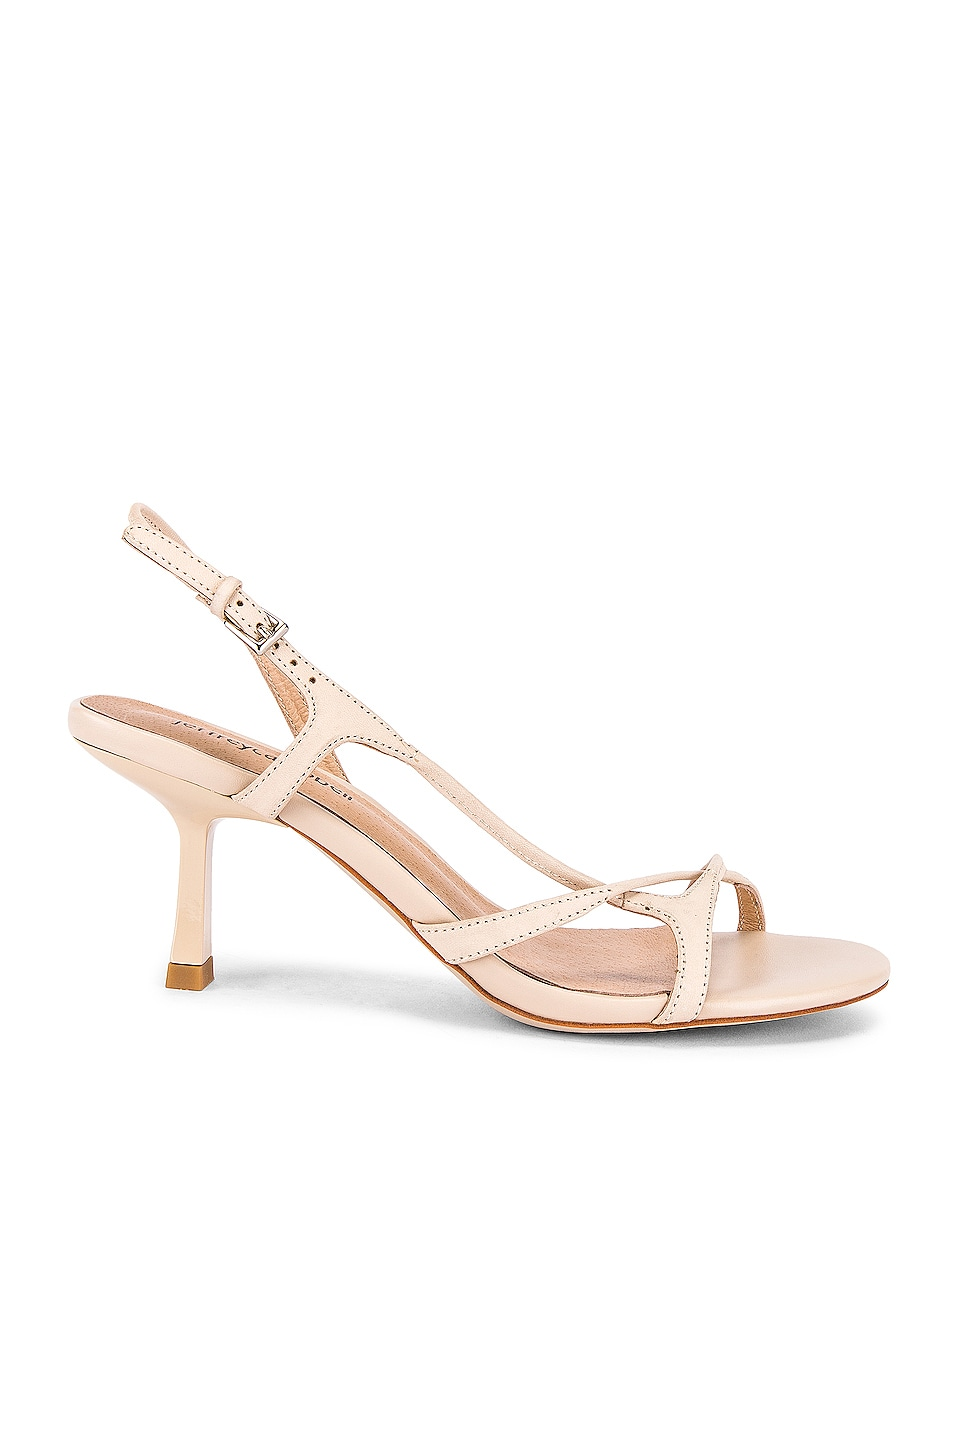 Jeffrey Campbell Parasite Sandal in Nude